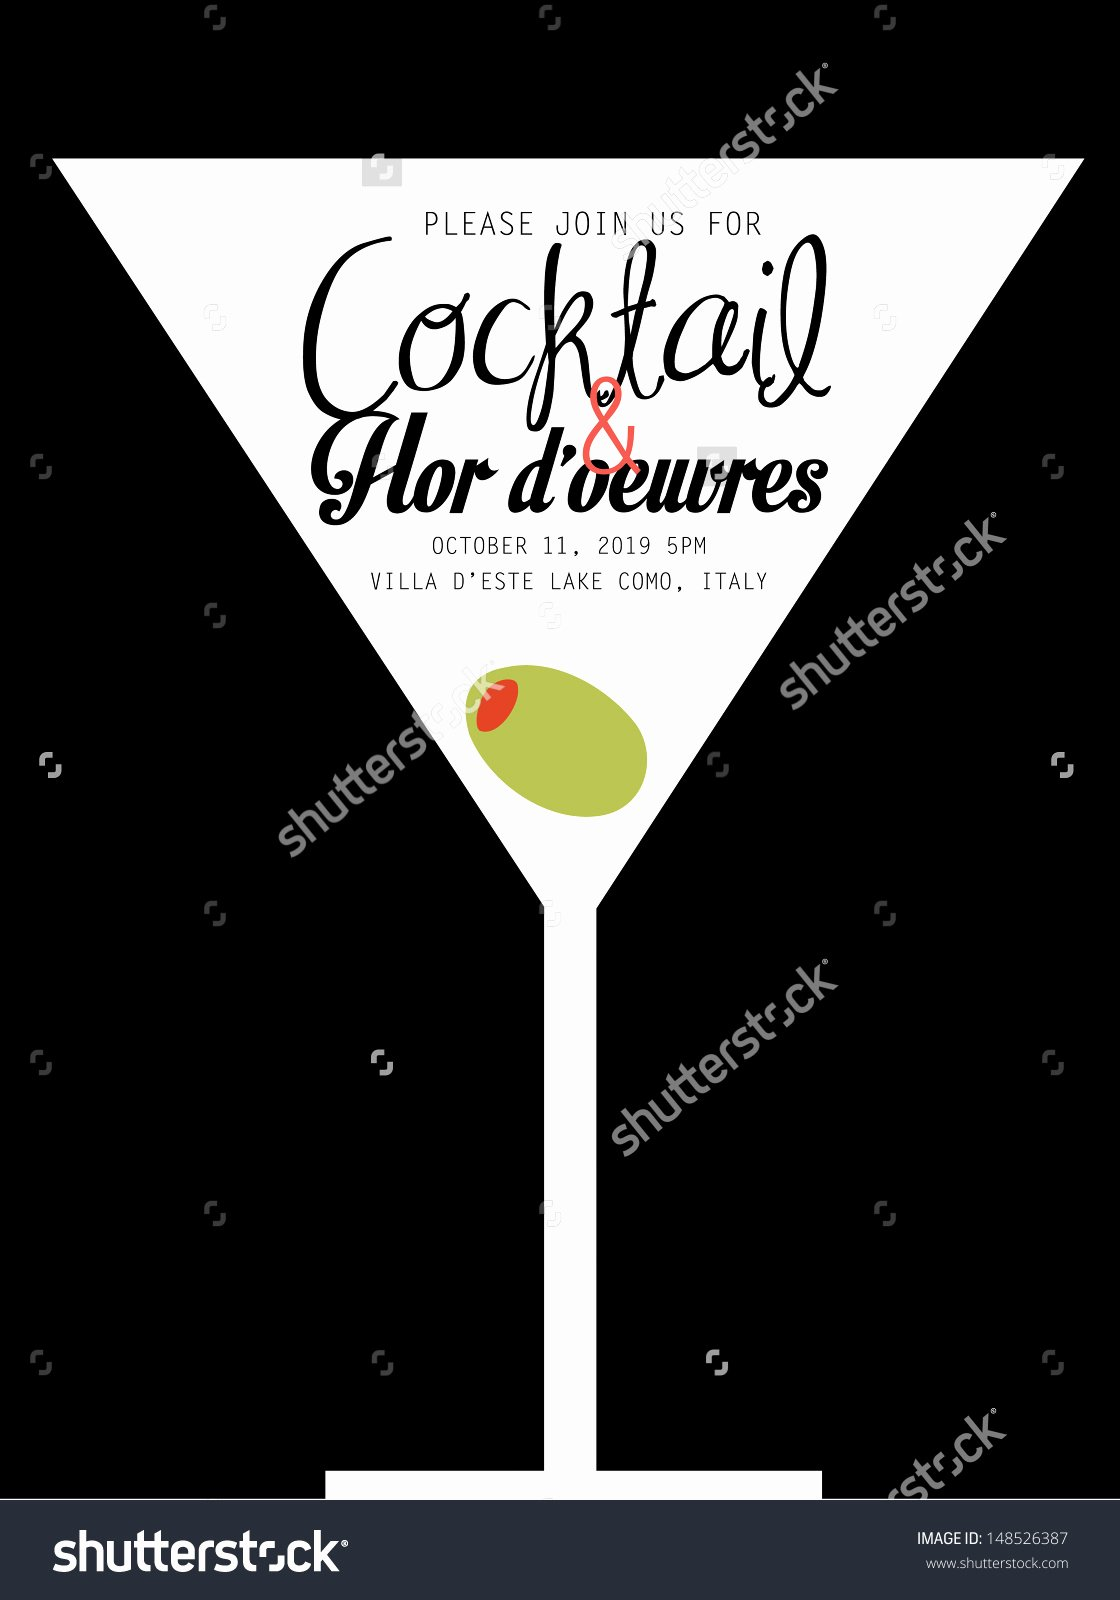 Cocktail Invitation Template